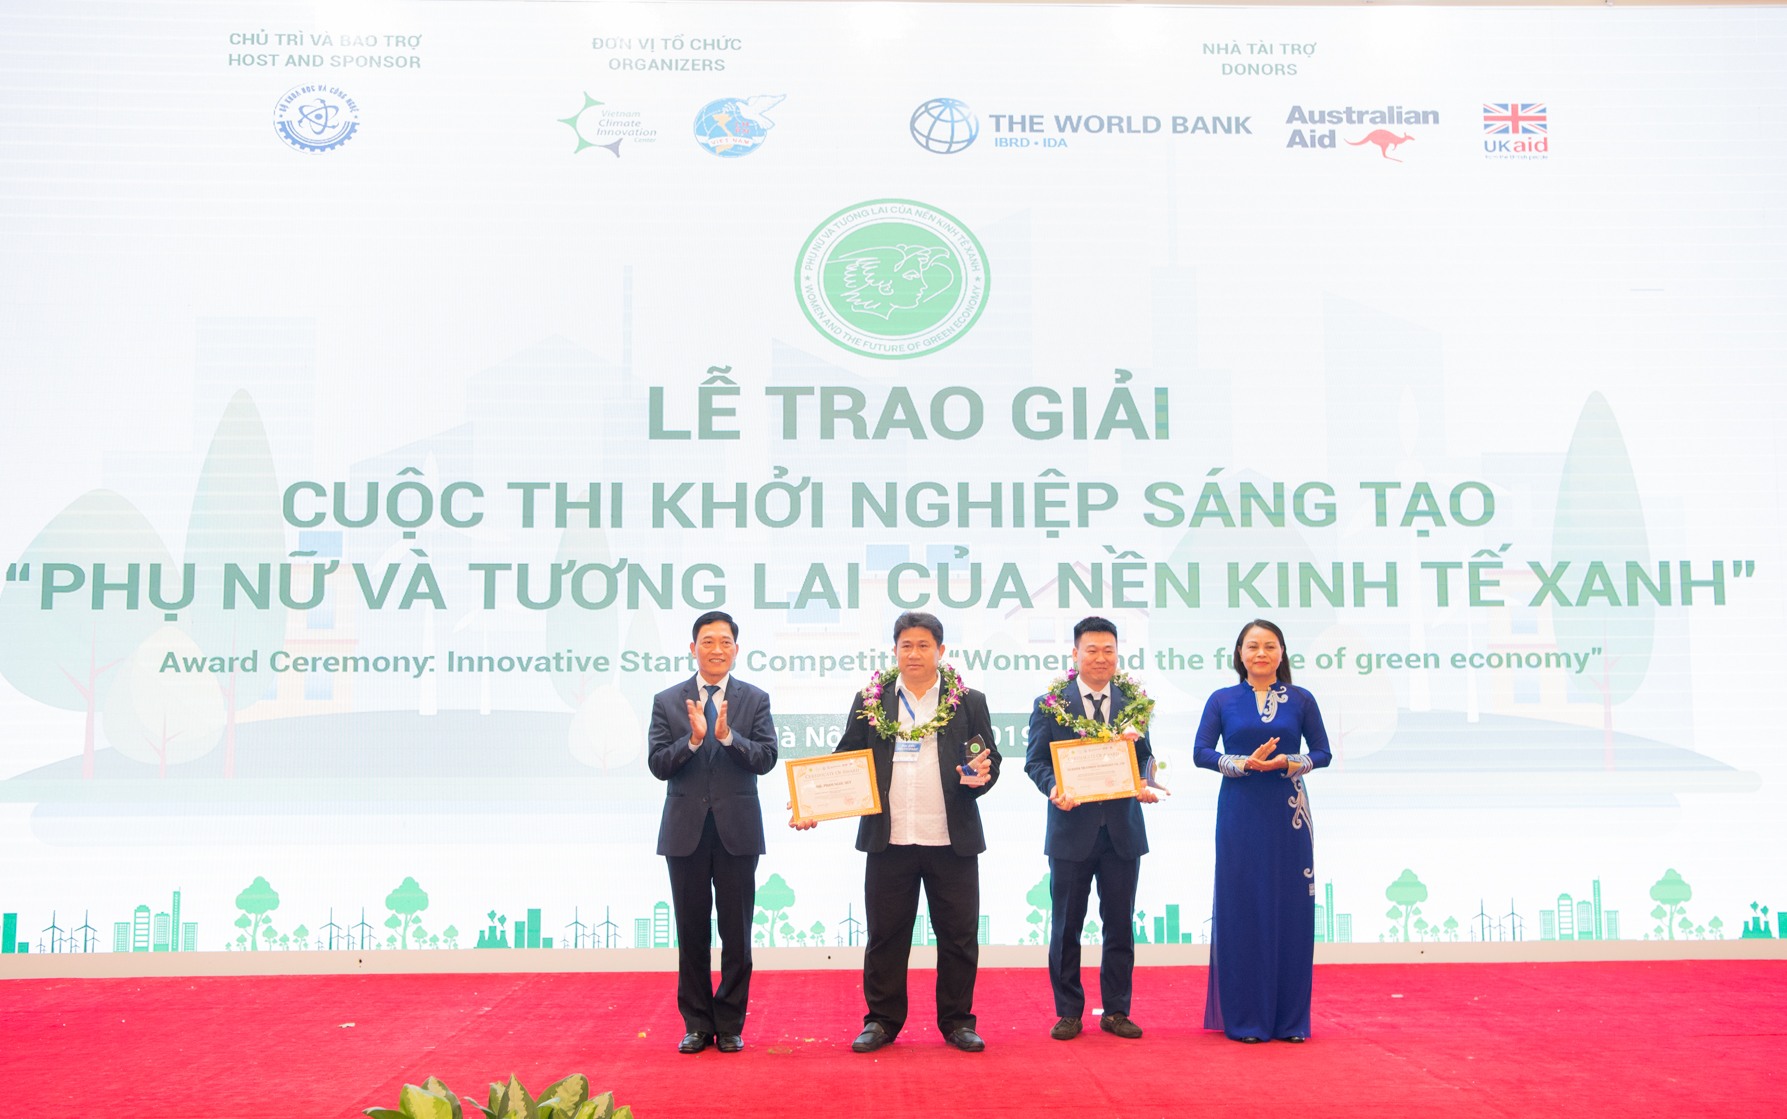 Vietnam waste water treatment technology without using electricity, heat or chemicals